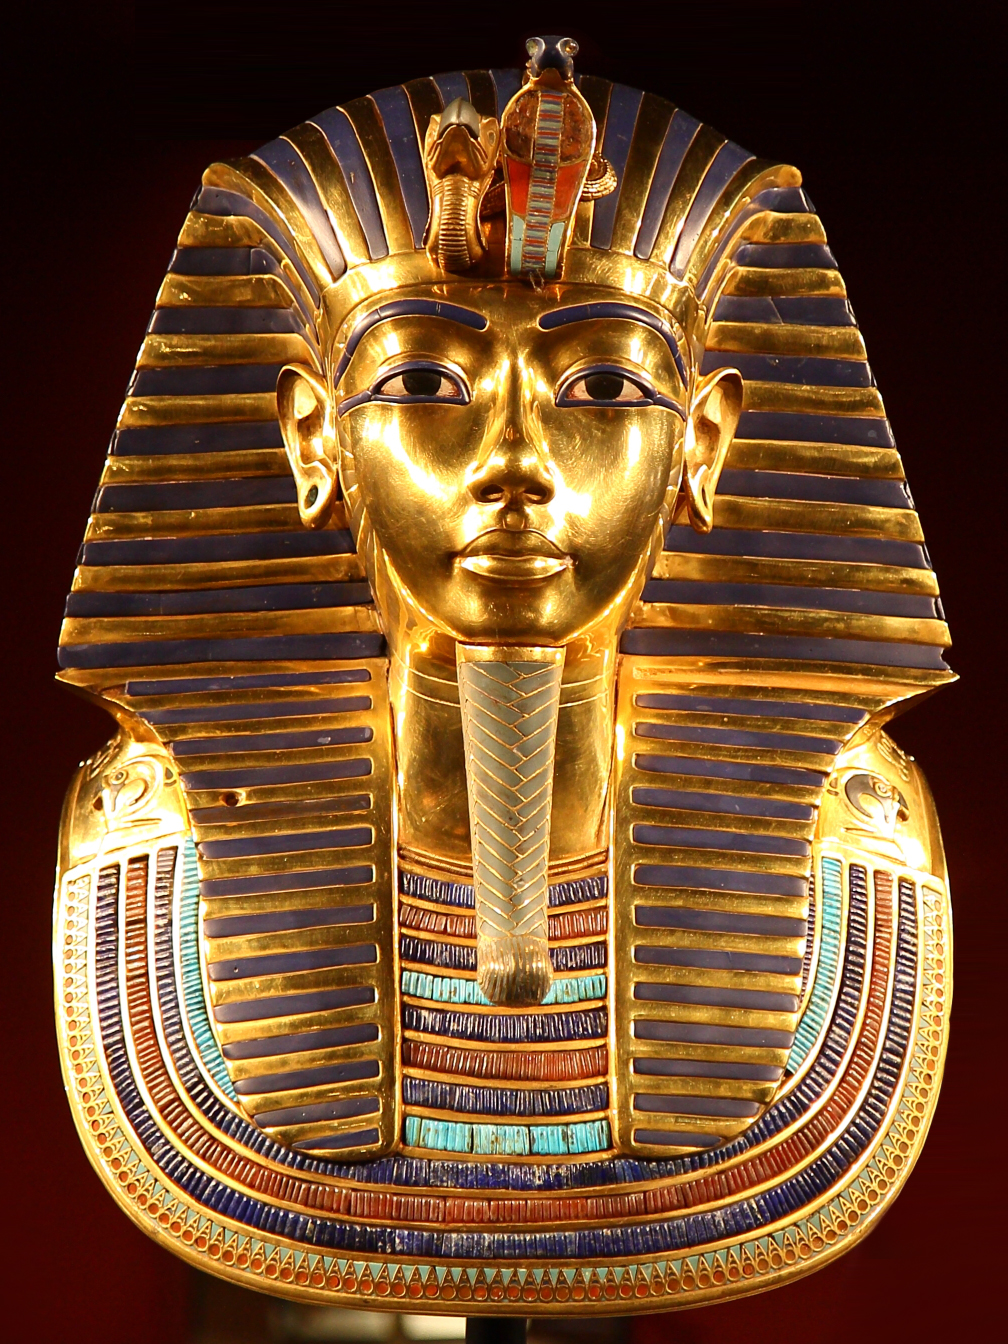 a history of the golden age in amenhoteps reign in egypt Egyptian dynasties 19-22 late new kingdom: ancient egypt's golden age (dynasties 19 and 20) the late new kingdom was a time of great prosperity and peace for egypt.